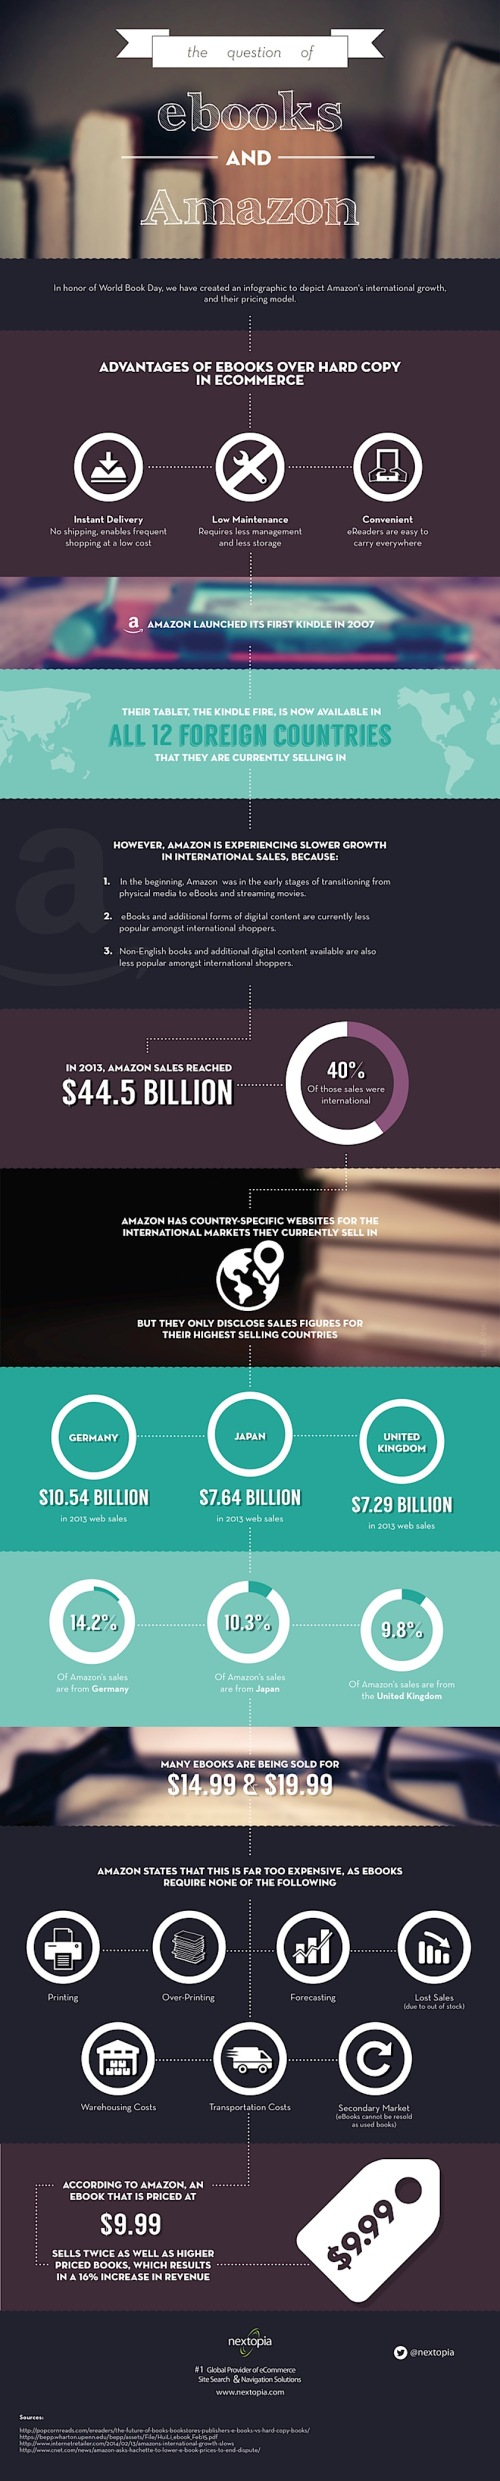 Amazon-influence-on-ebook-growth-infographic